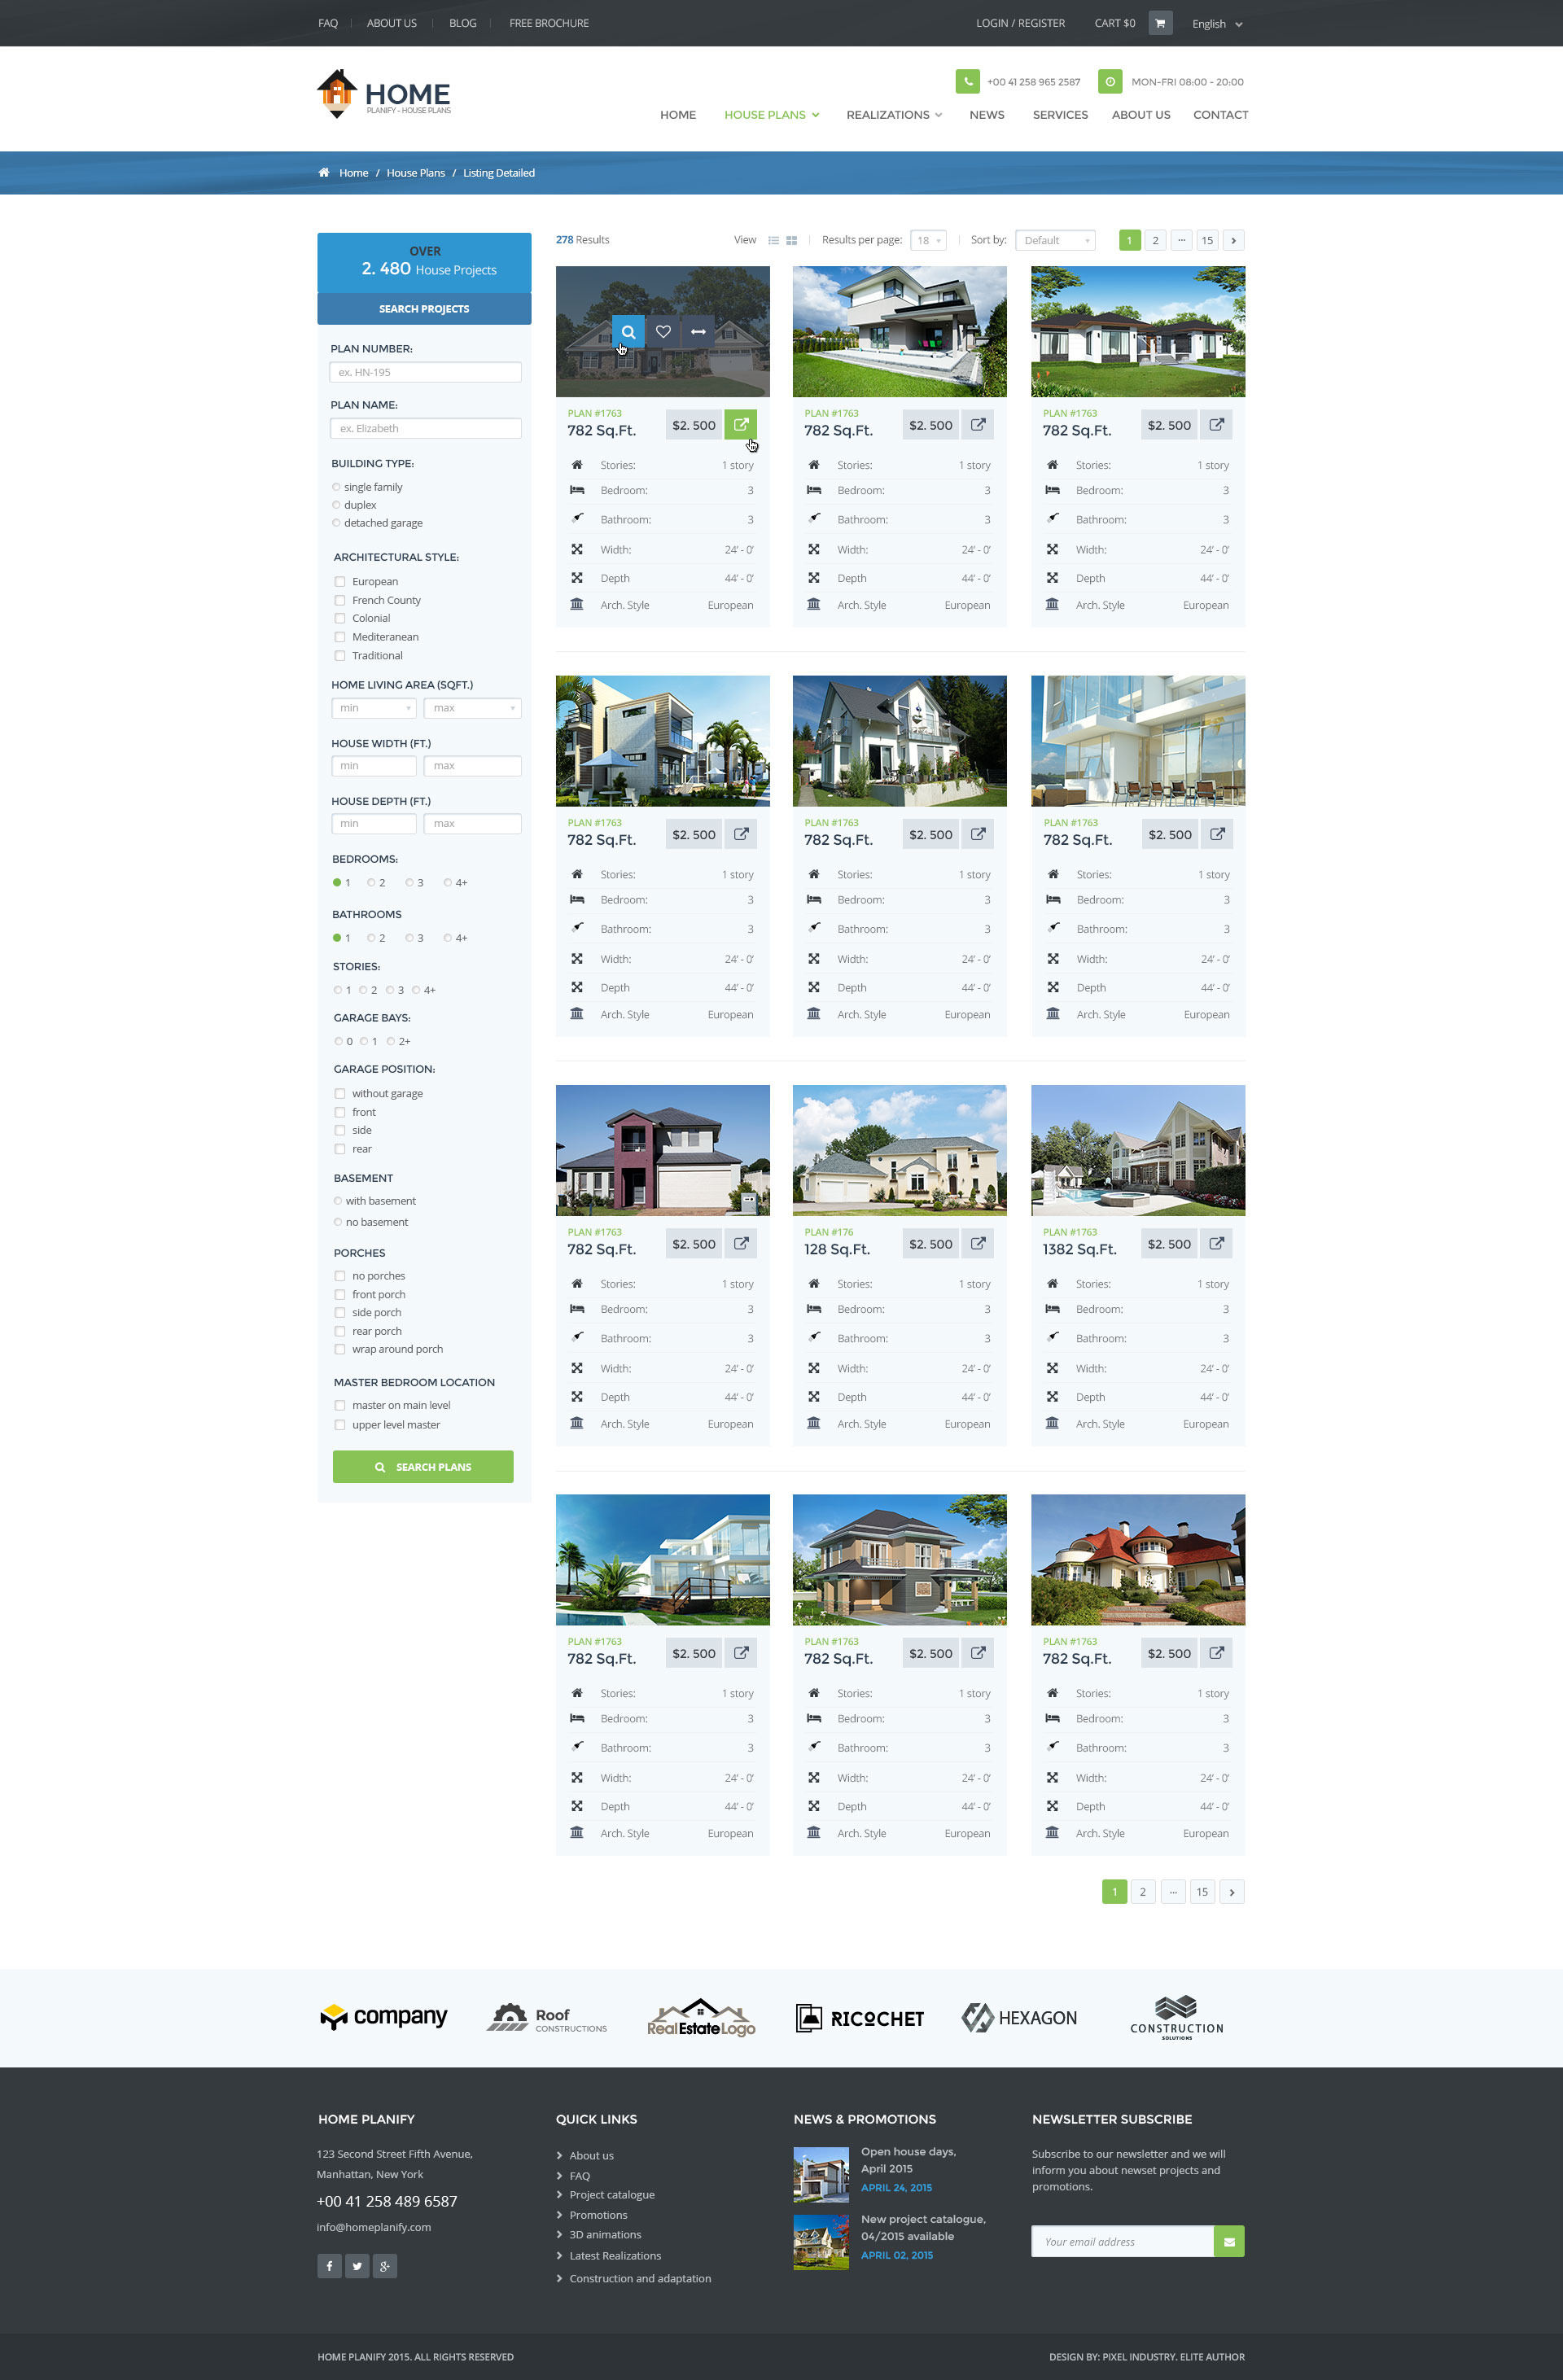 home planify house plans construction psd template by pixel home planify house plans construction psd template